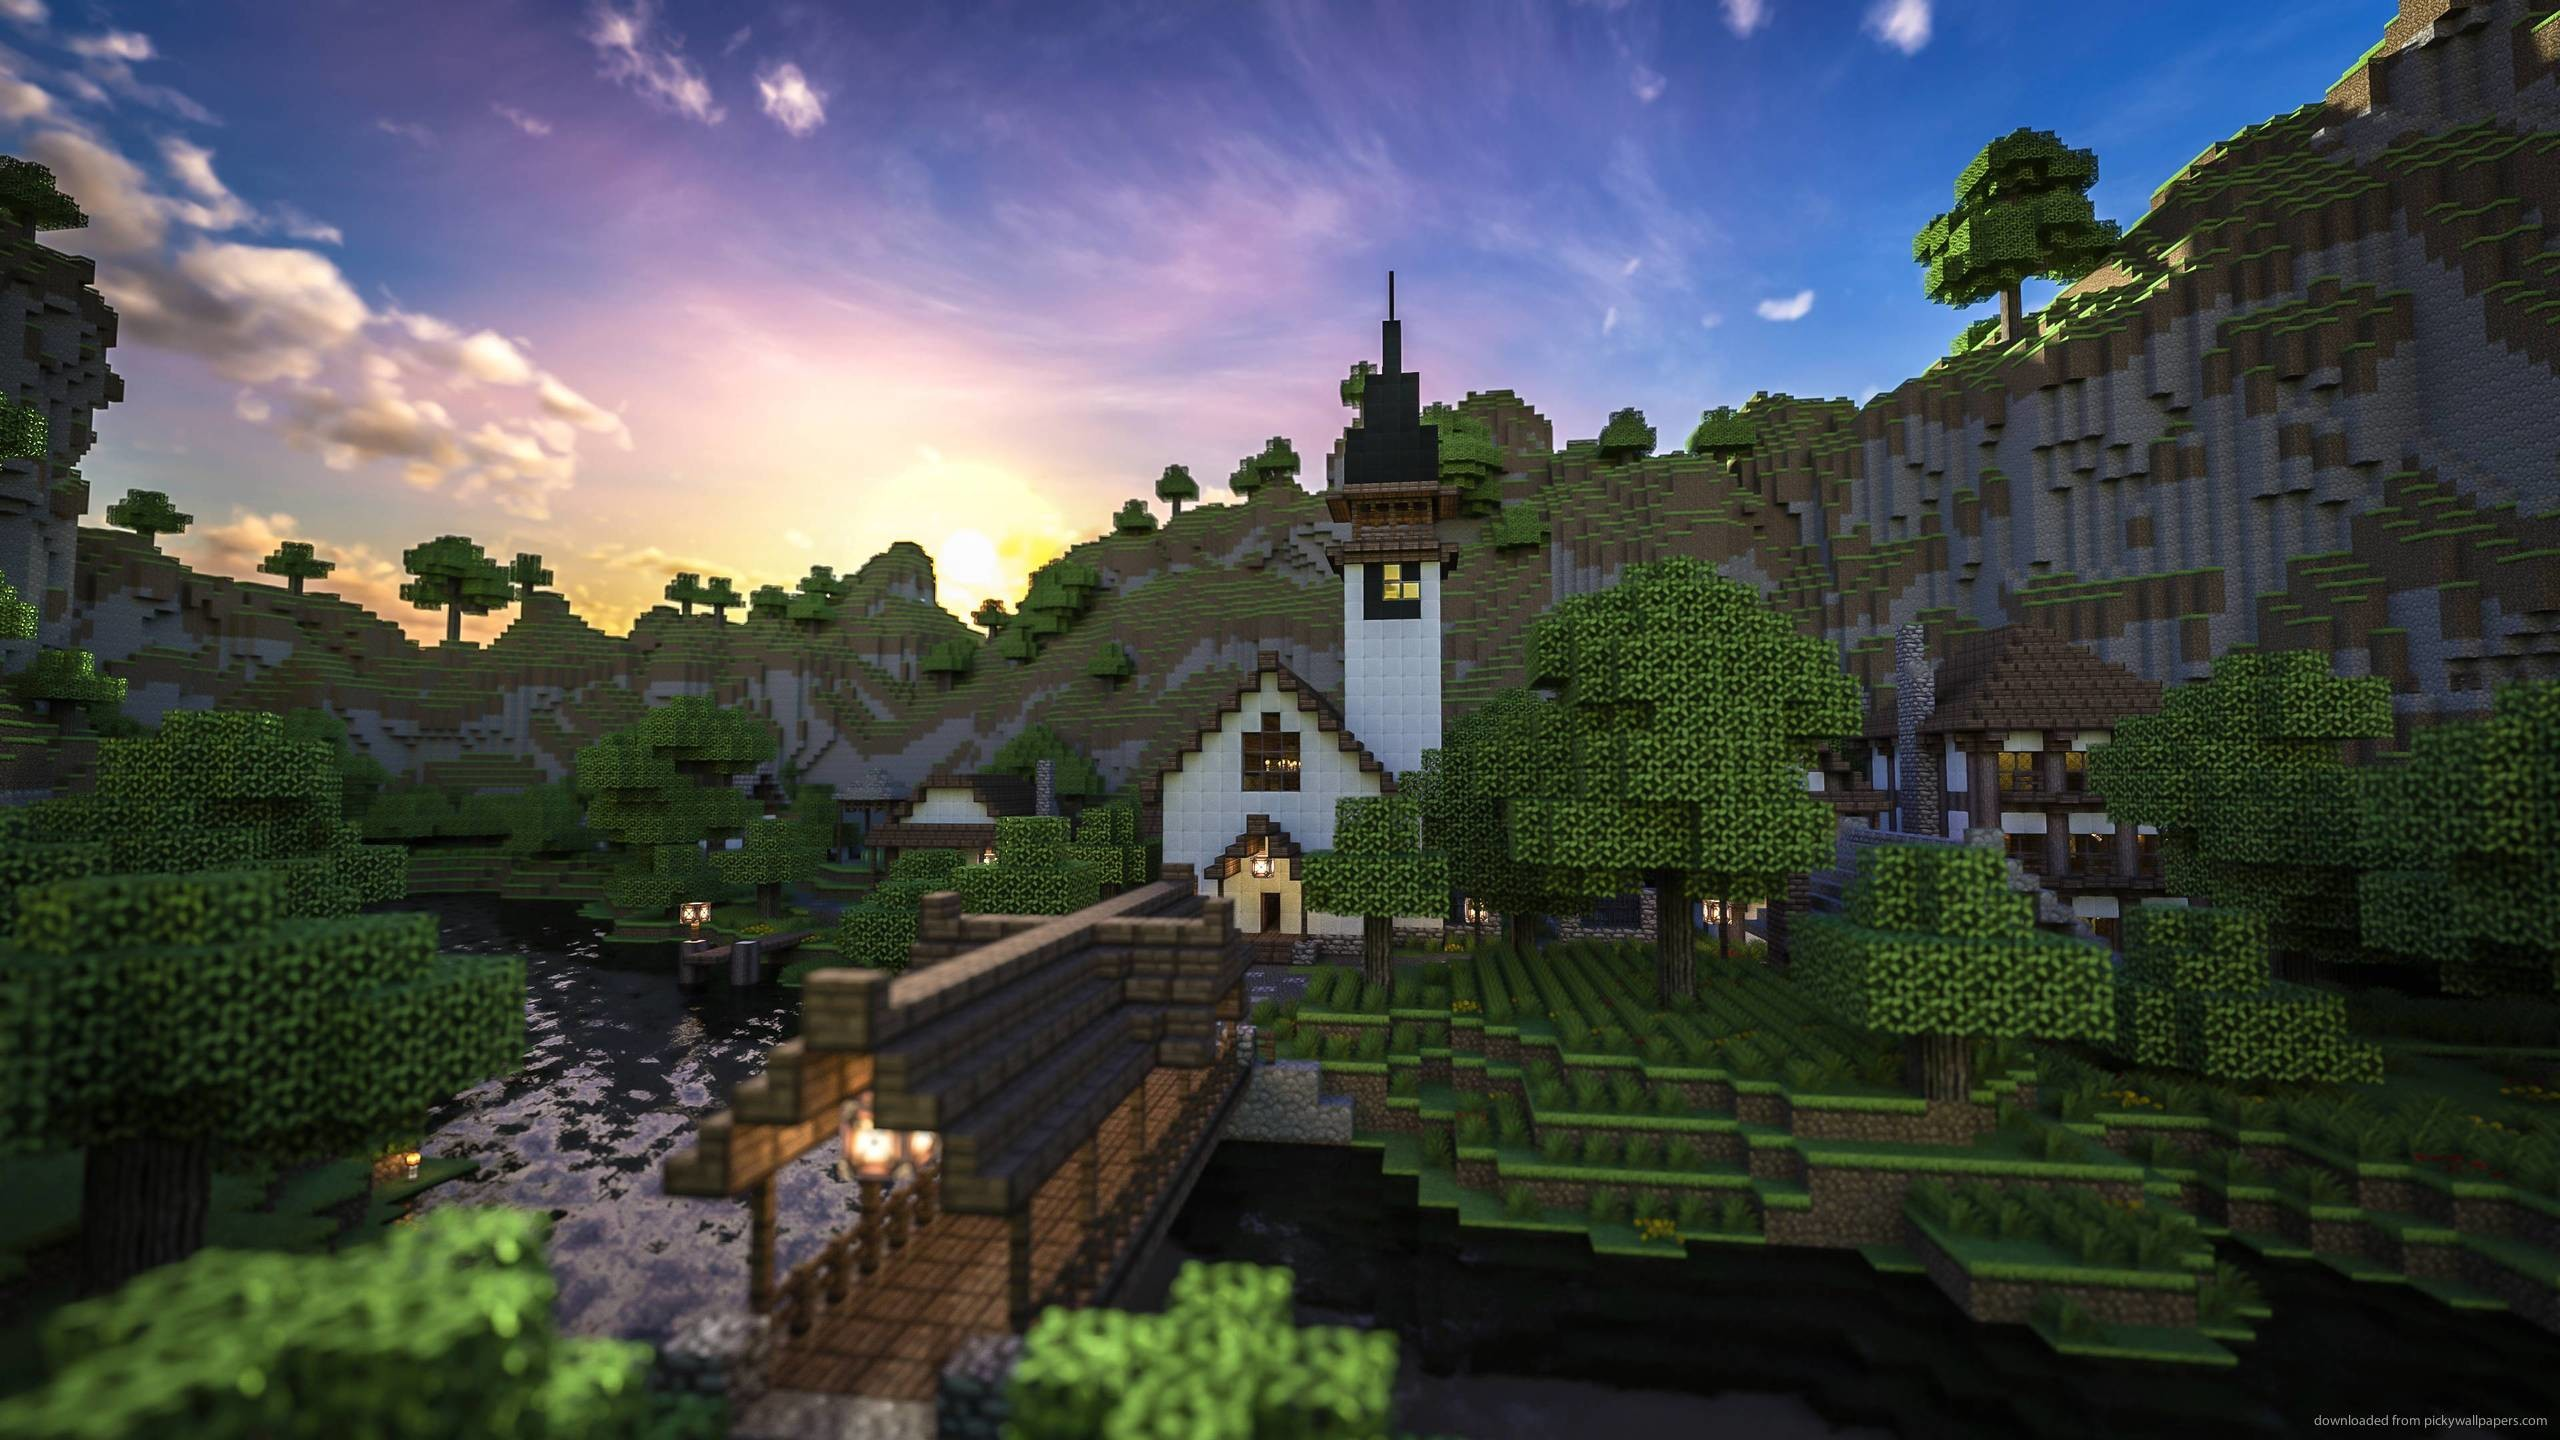 Minecraft background 76 images 2048x1152 preview wallpaper minecraft trees houses mountains water 2048x1152 voltagebd Image collections